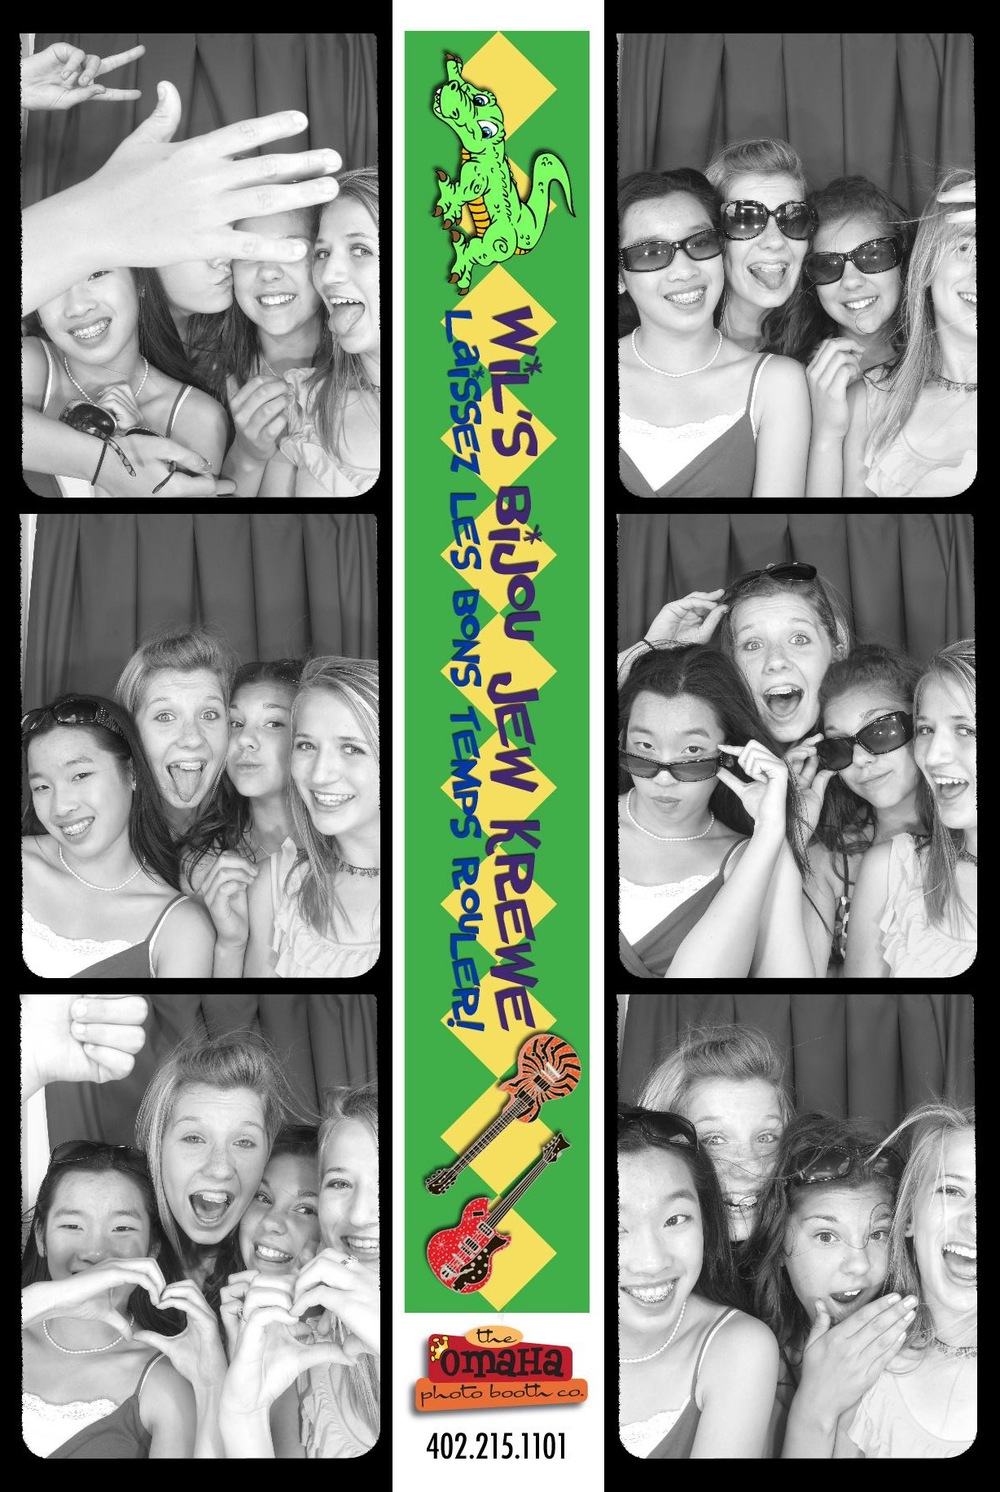 Bar and Bat Mitzvah Photo Booth Rental Omaha 2